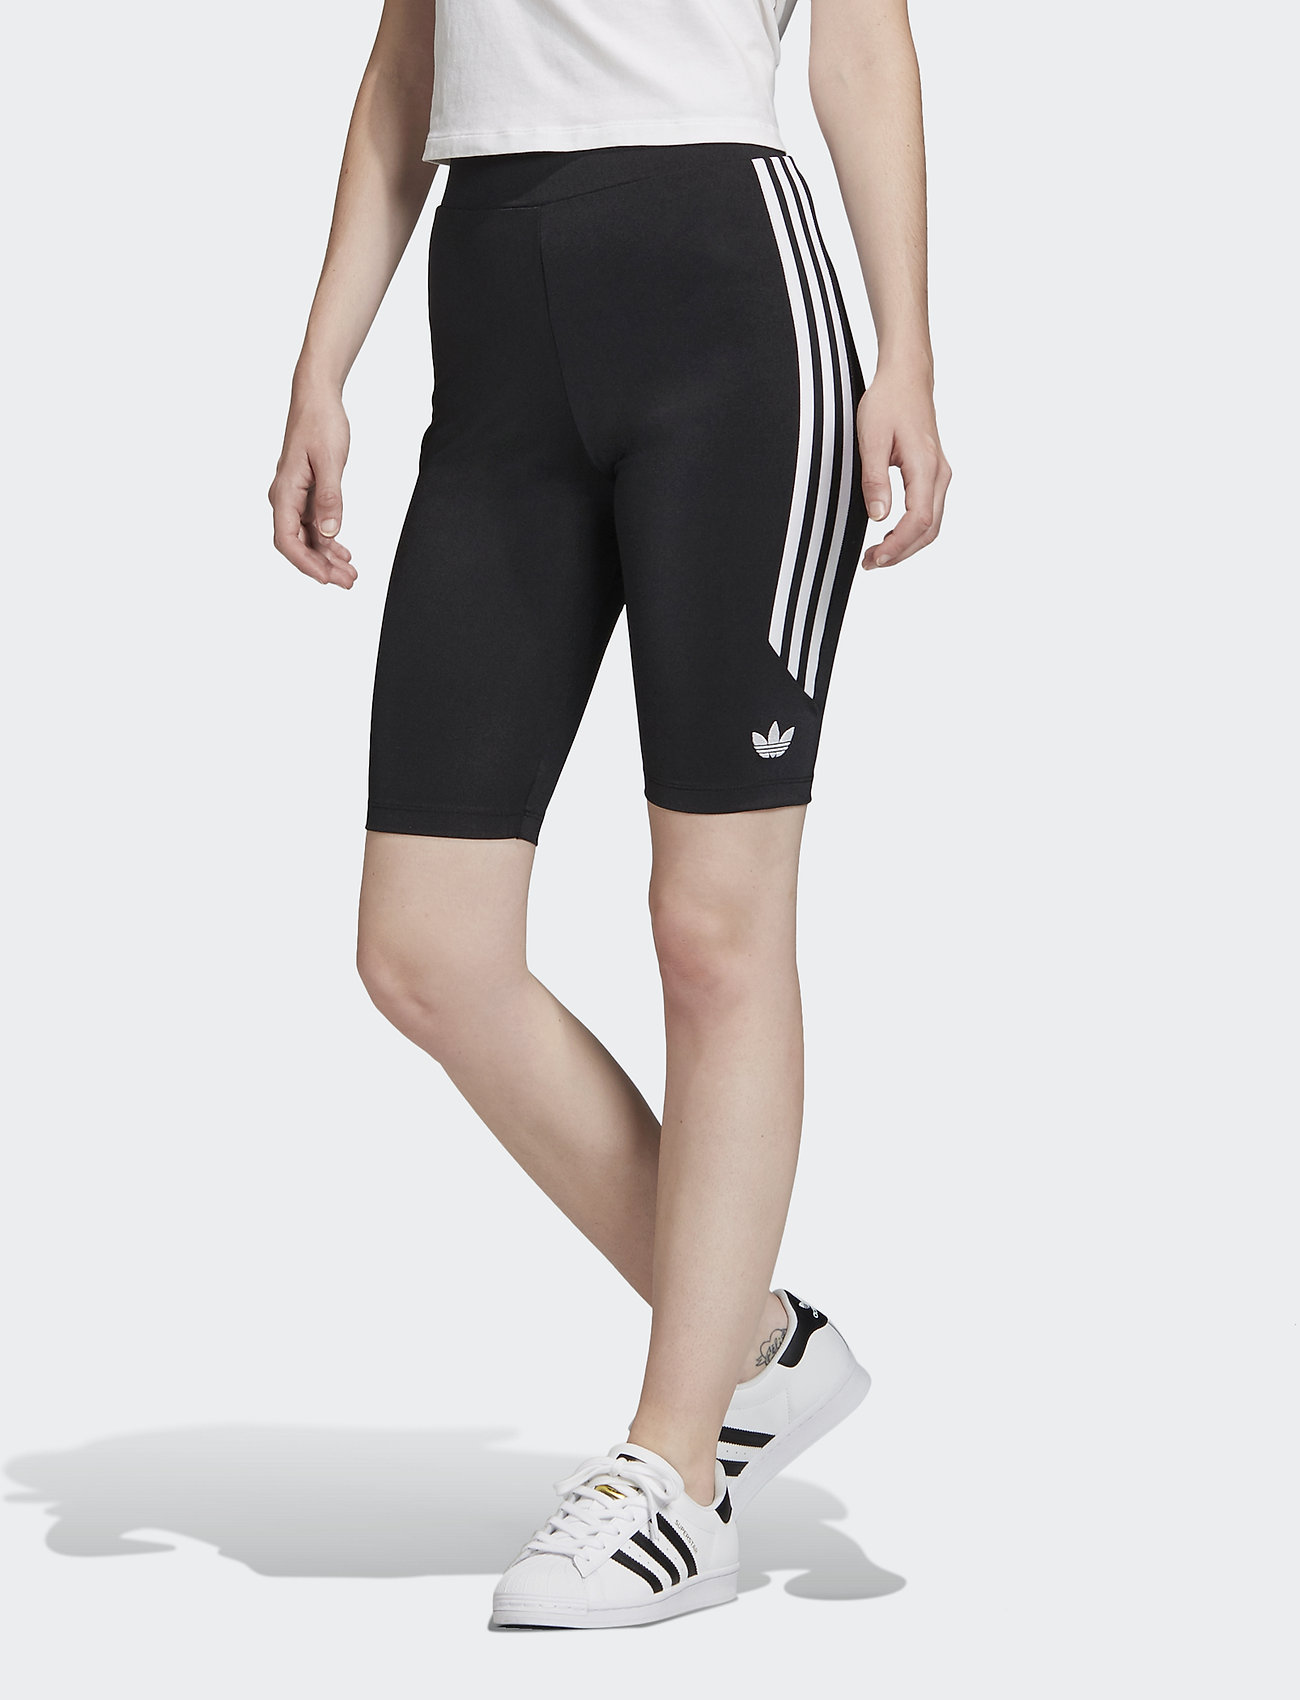 adidas Originals - CYCLING TIGHT - spodenki treningowe - black - 0